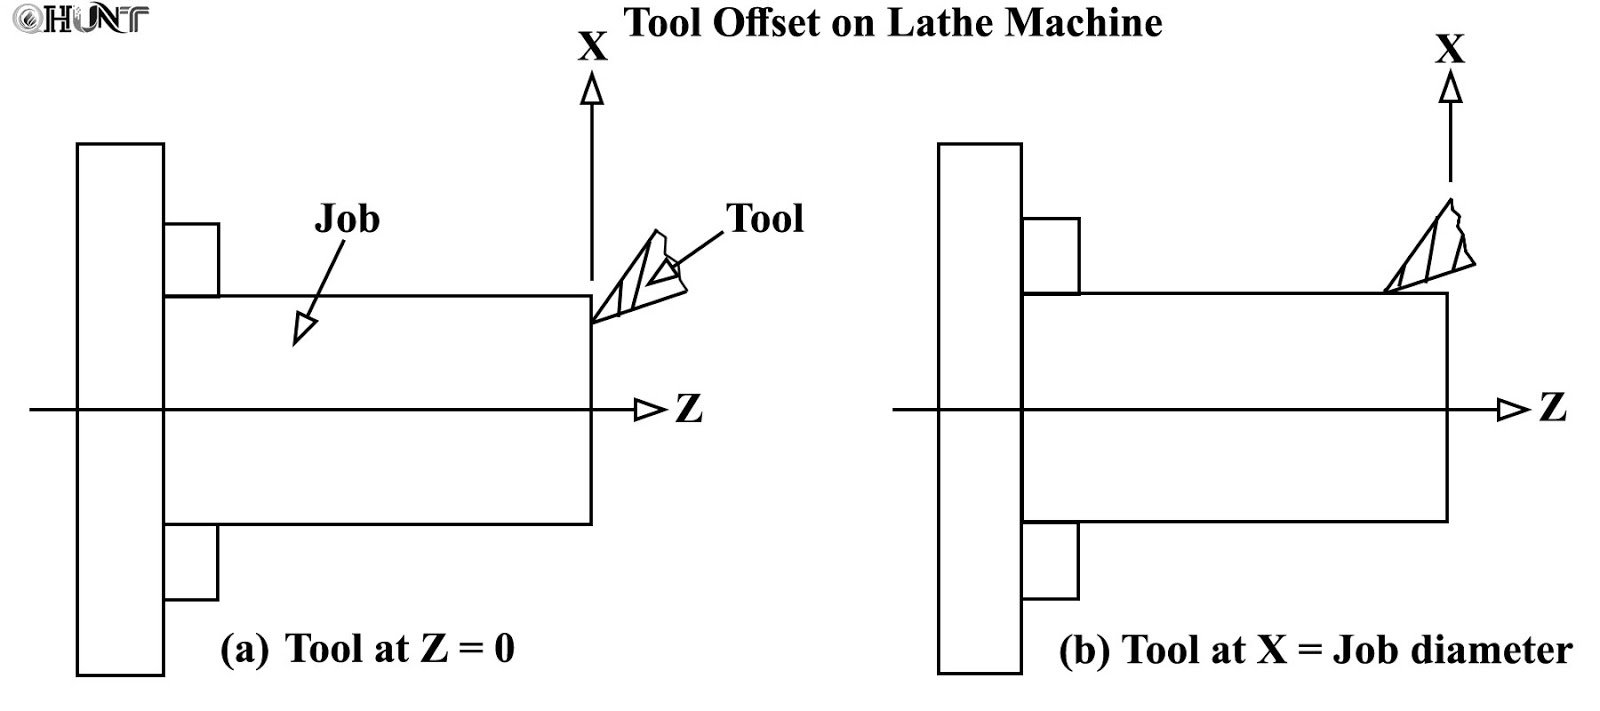 taking tool offset on lathe machine and proving selected program [ 1600 x 711 Pixel ]